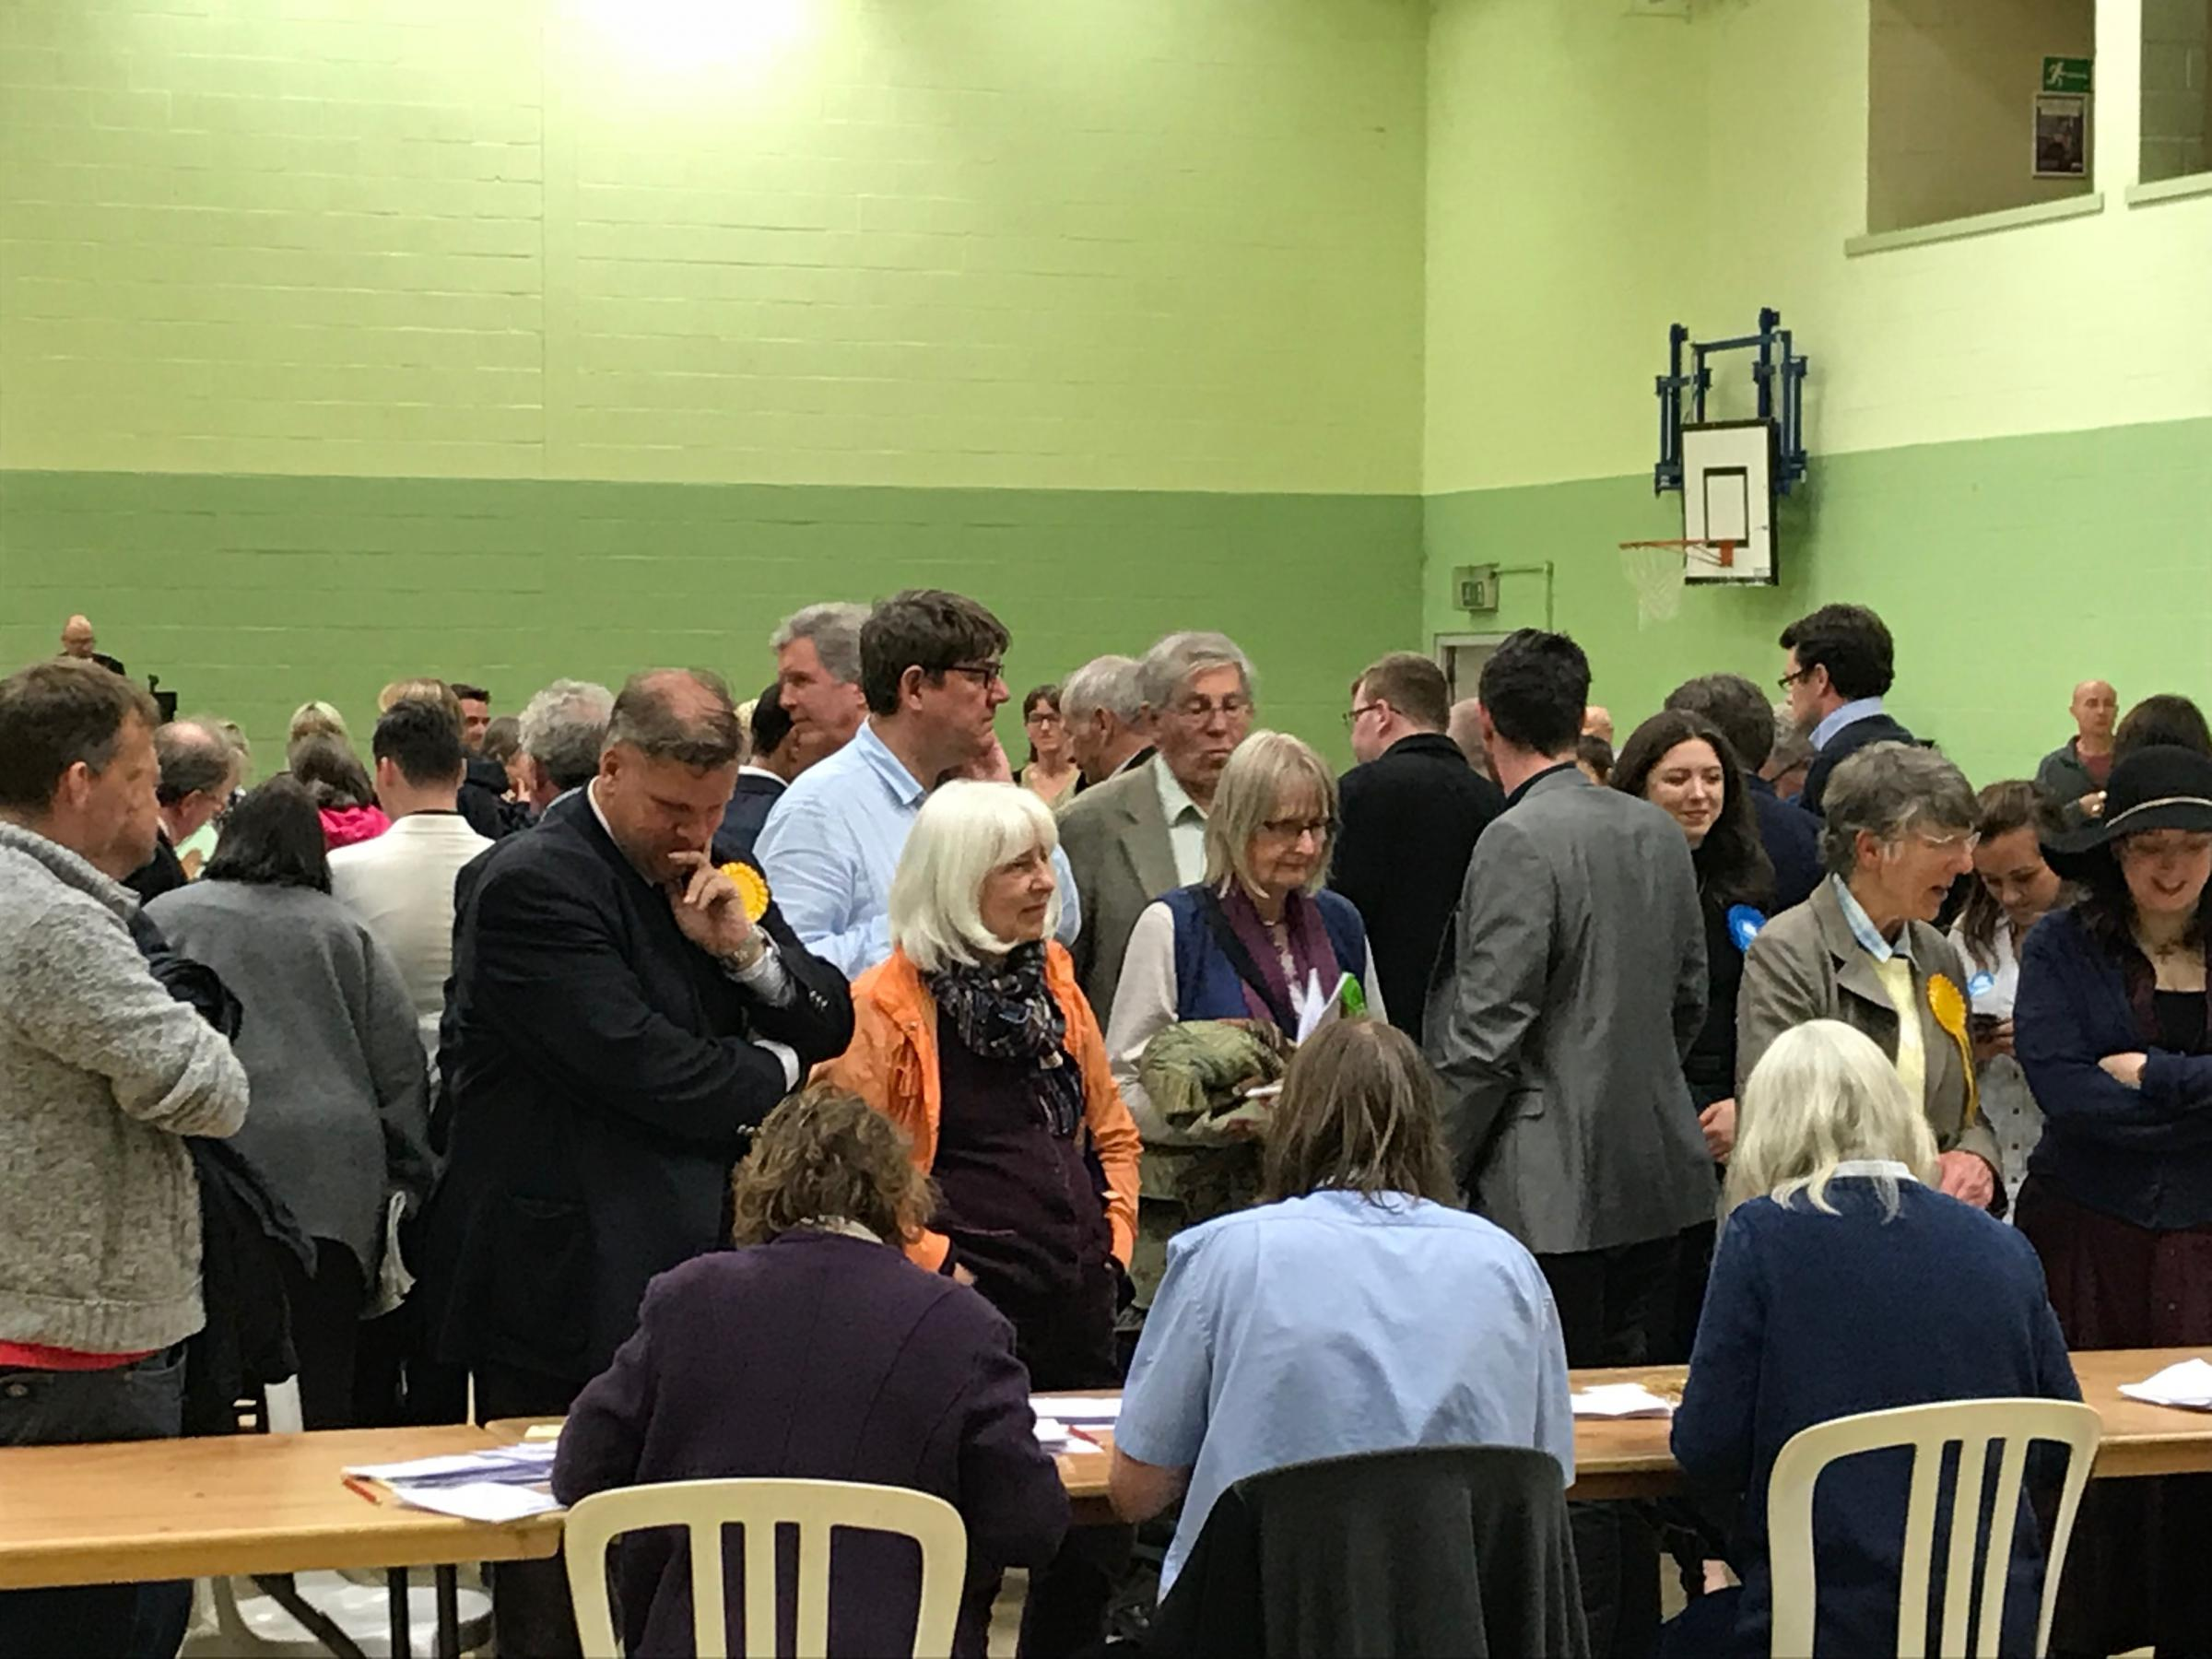 'Difficult' night as Conservatives lose seats in West Oxfordshire